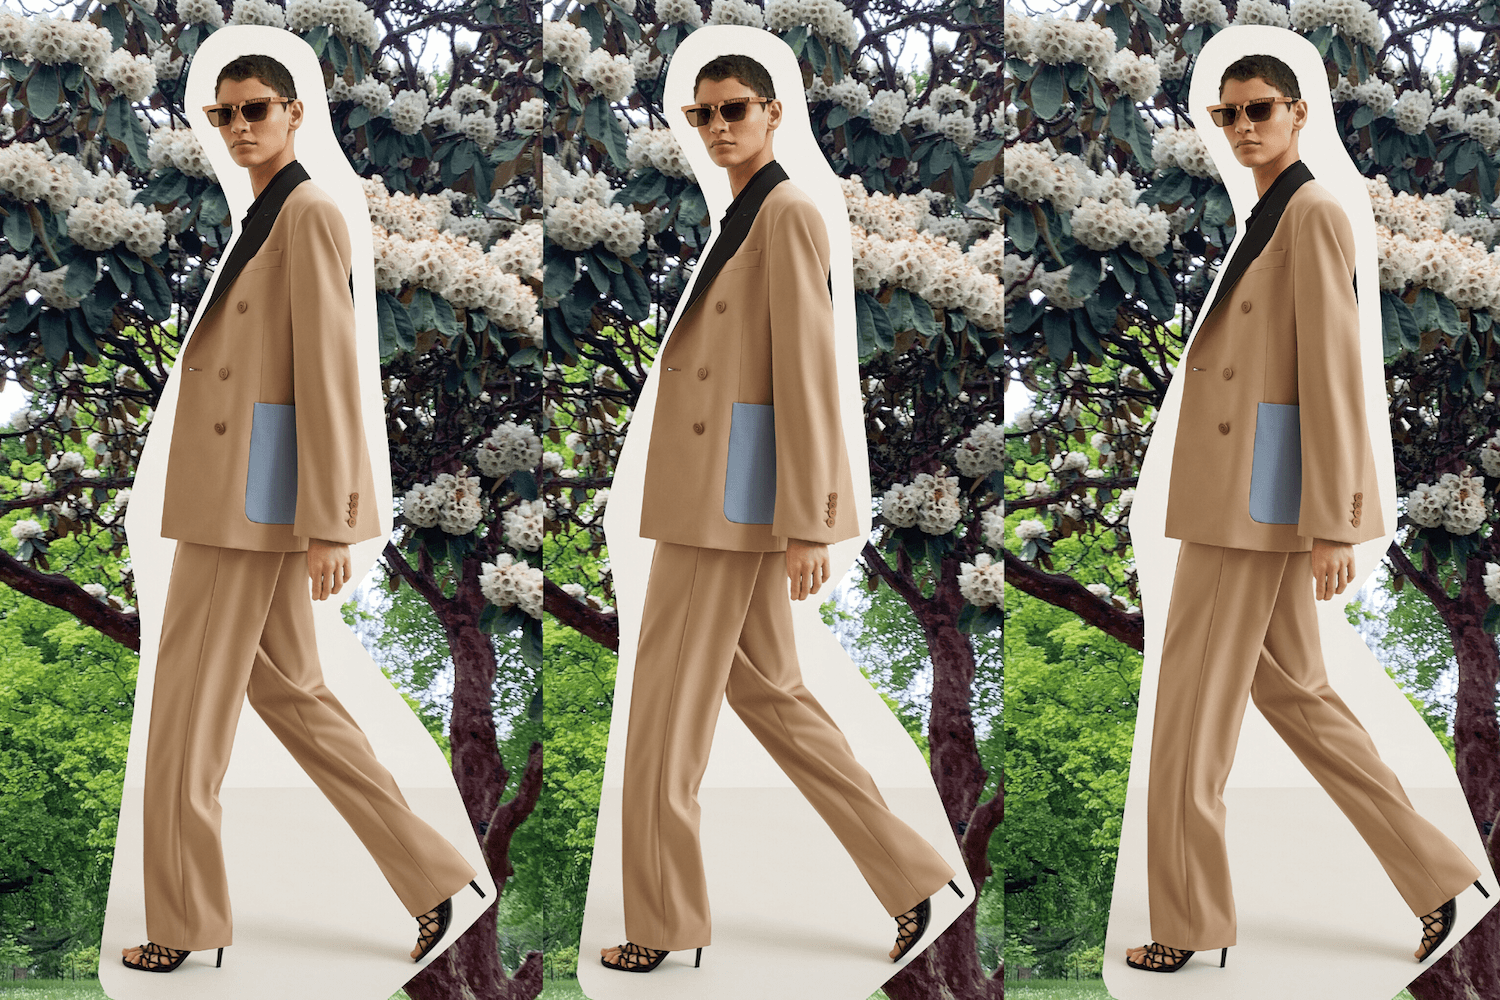 Stella McCartney Resort 2020: 75% of materials coming from eco-friendly resources